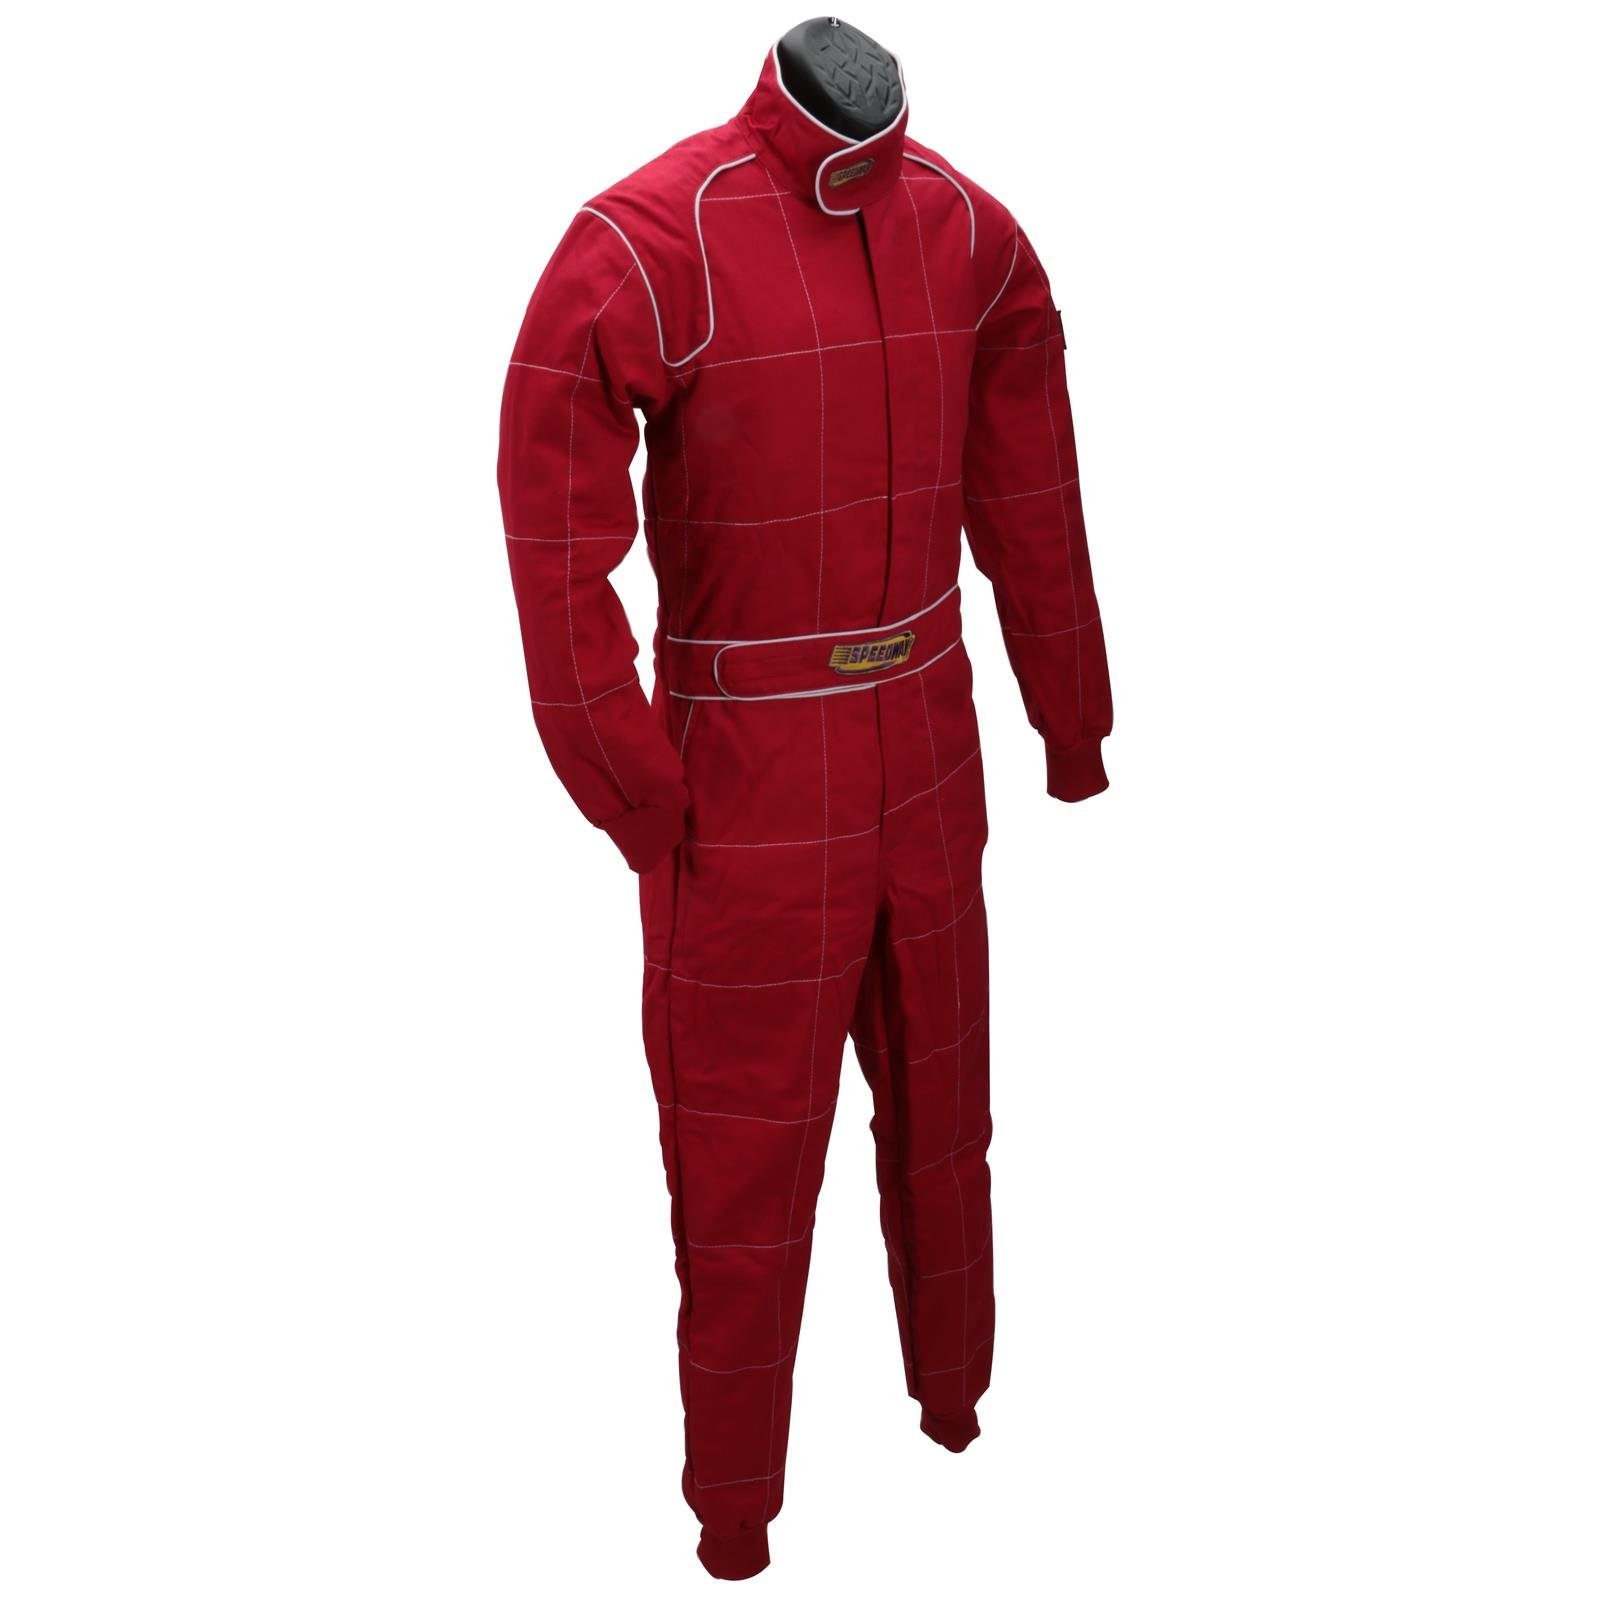 Red 2 Layer Racing Suit-One Piece-SFI-5 Rated, XL by Speedway Motors (Image #1)